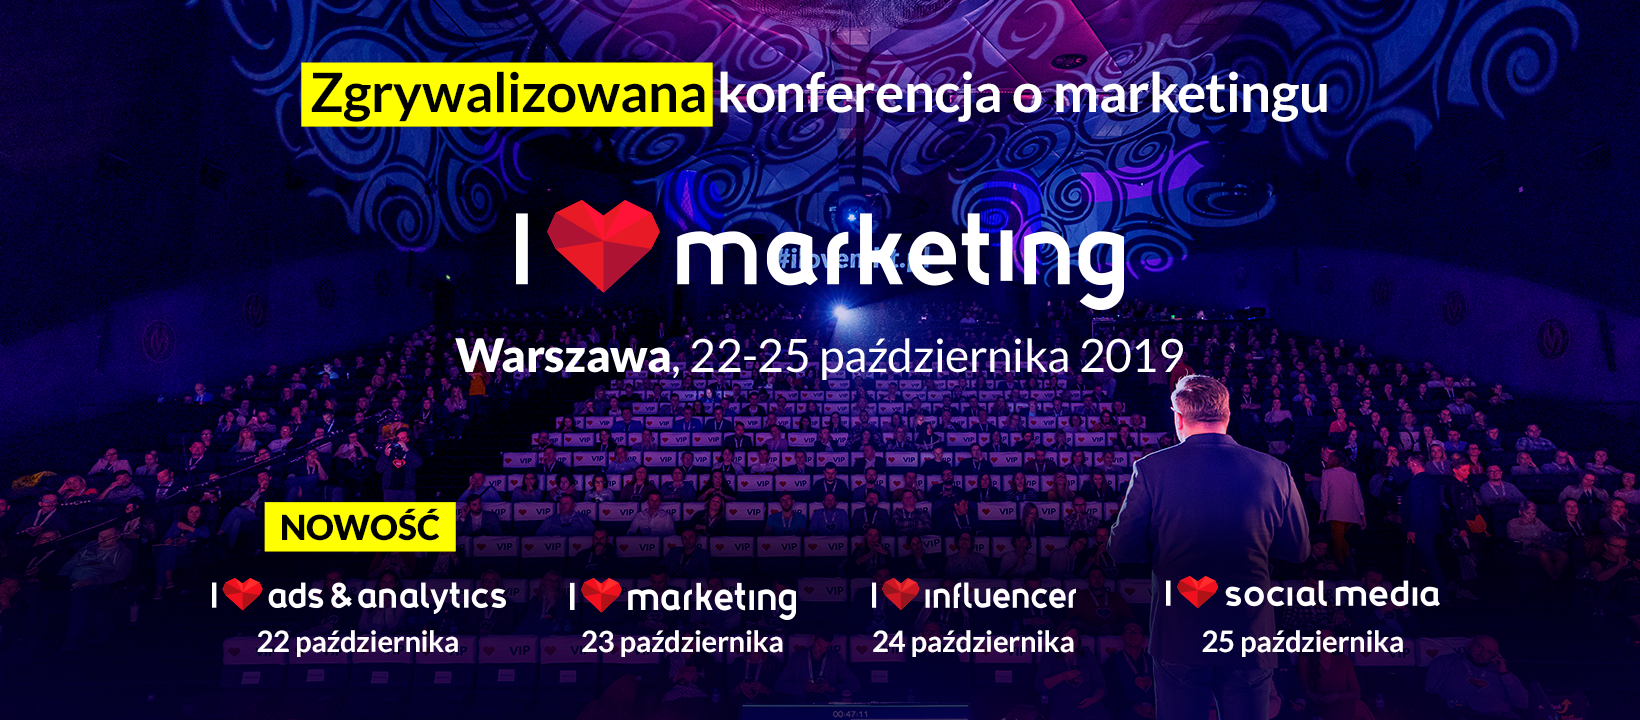 Konferencja I love marketing I love social media I love ads&analytics I love influencer